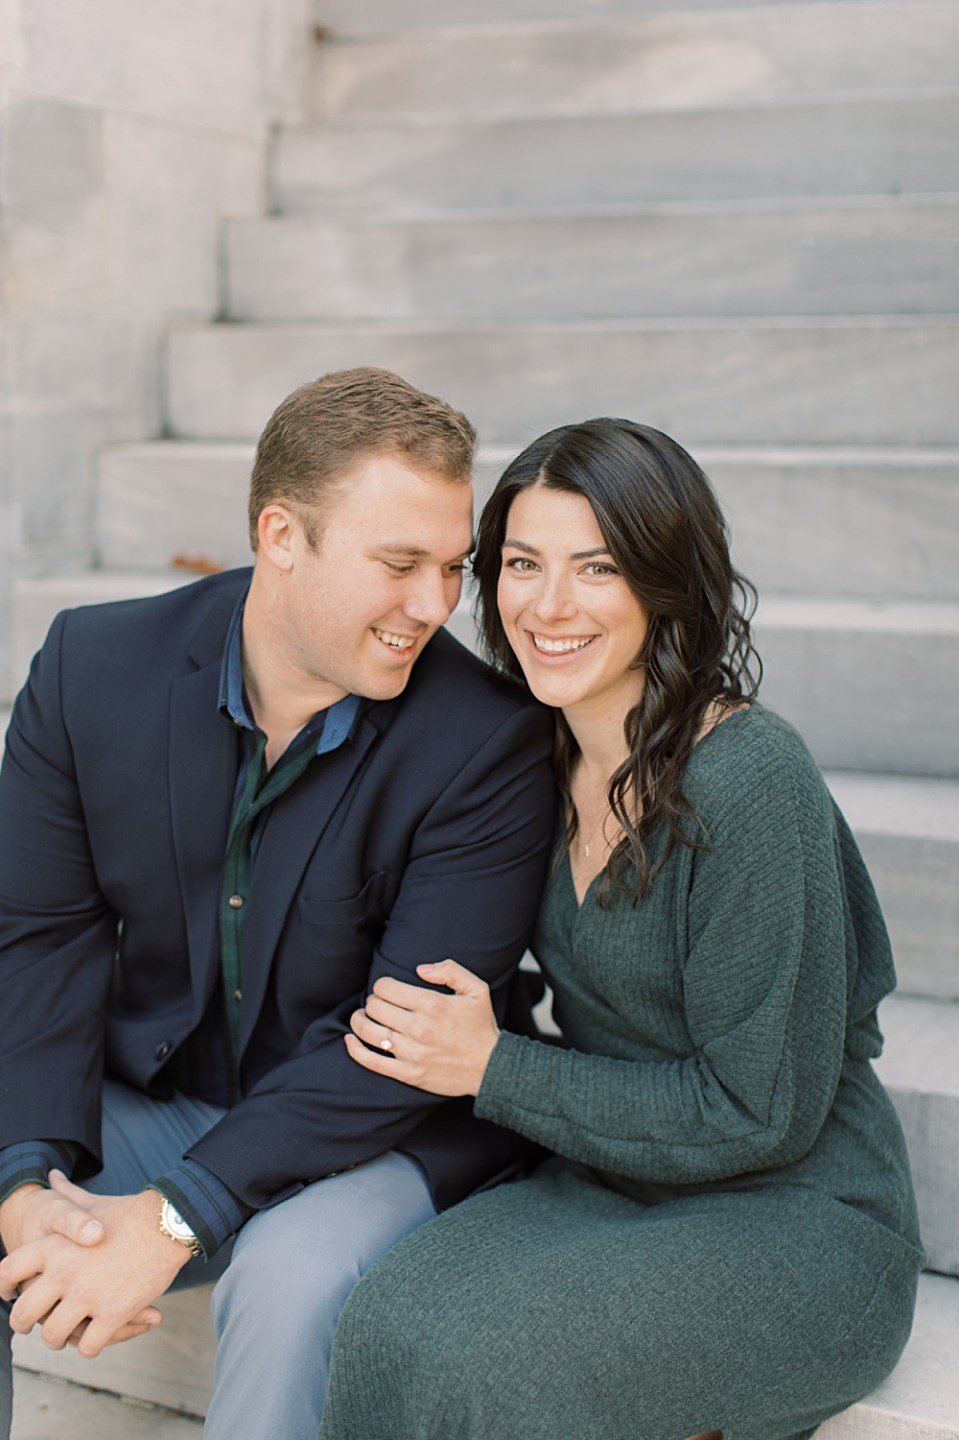 Seated engagement session pose | Philadelphia Wedding Photographer Sarah Canning